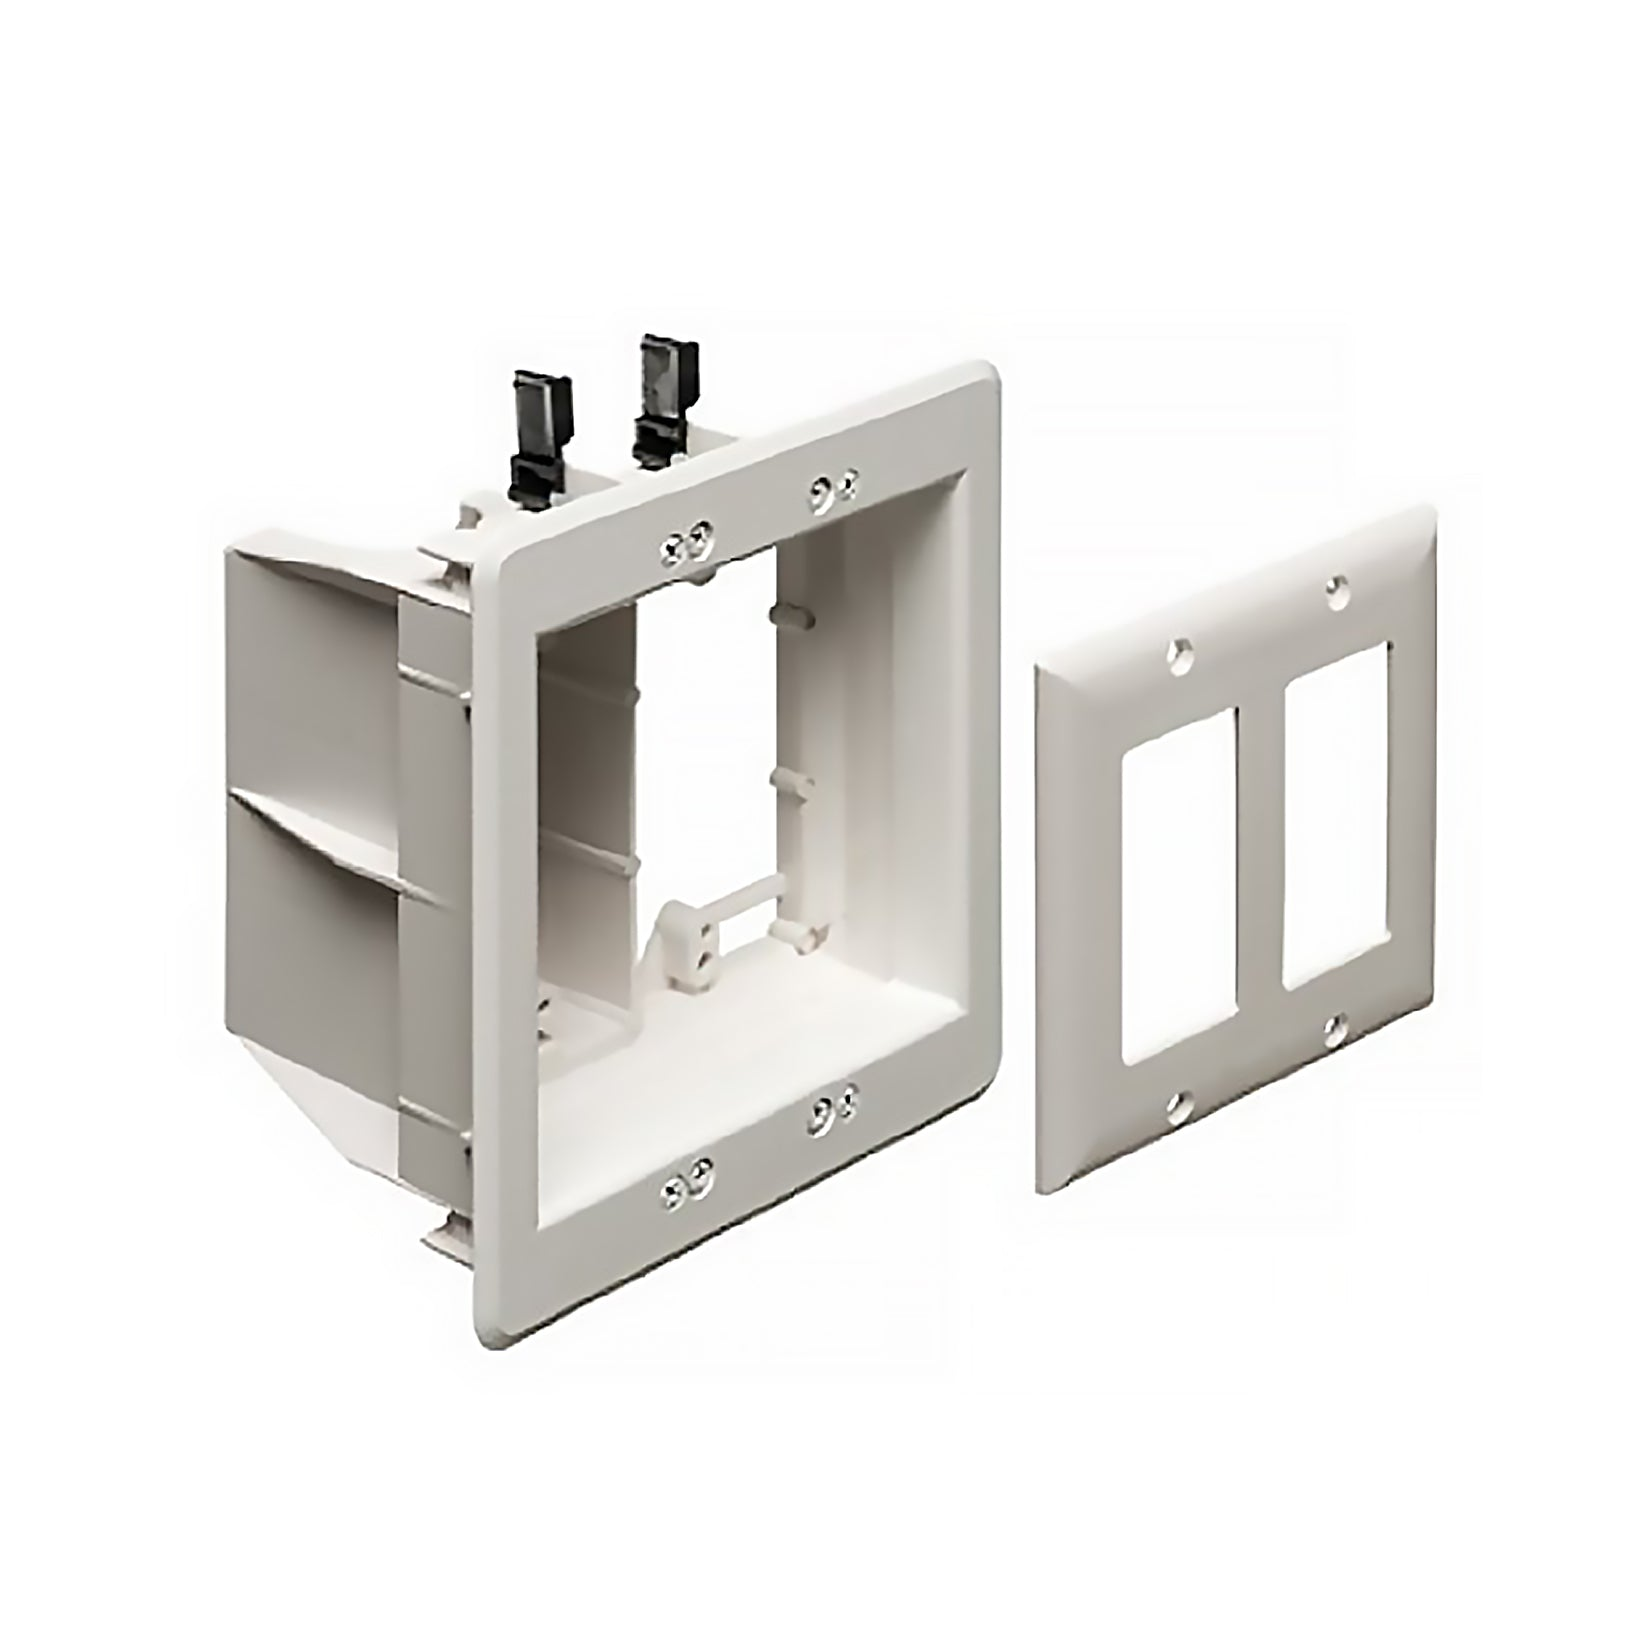 Arlington TVBU505 2 Gang Recessed TV Box Wall Plate Kit Paintable, White